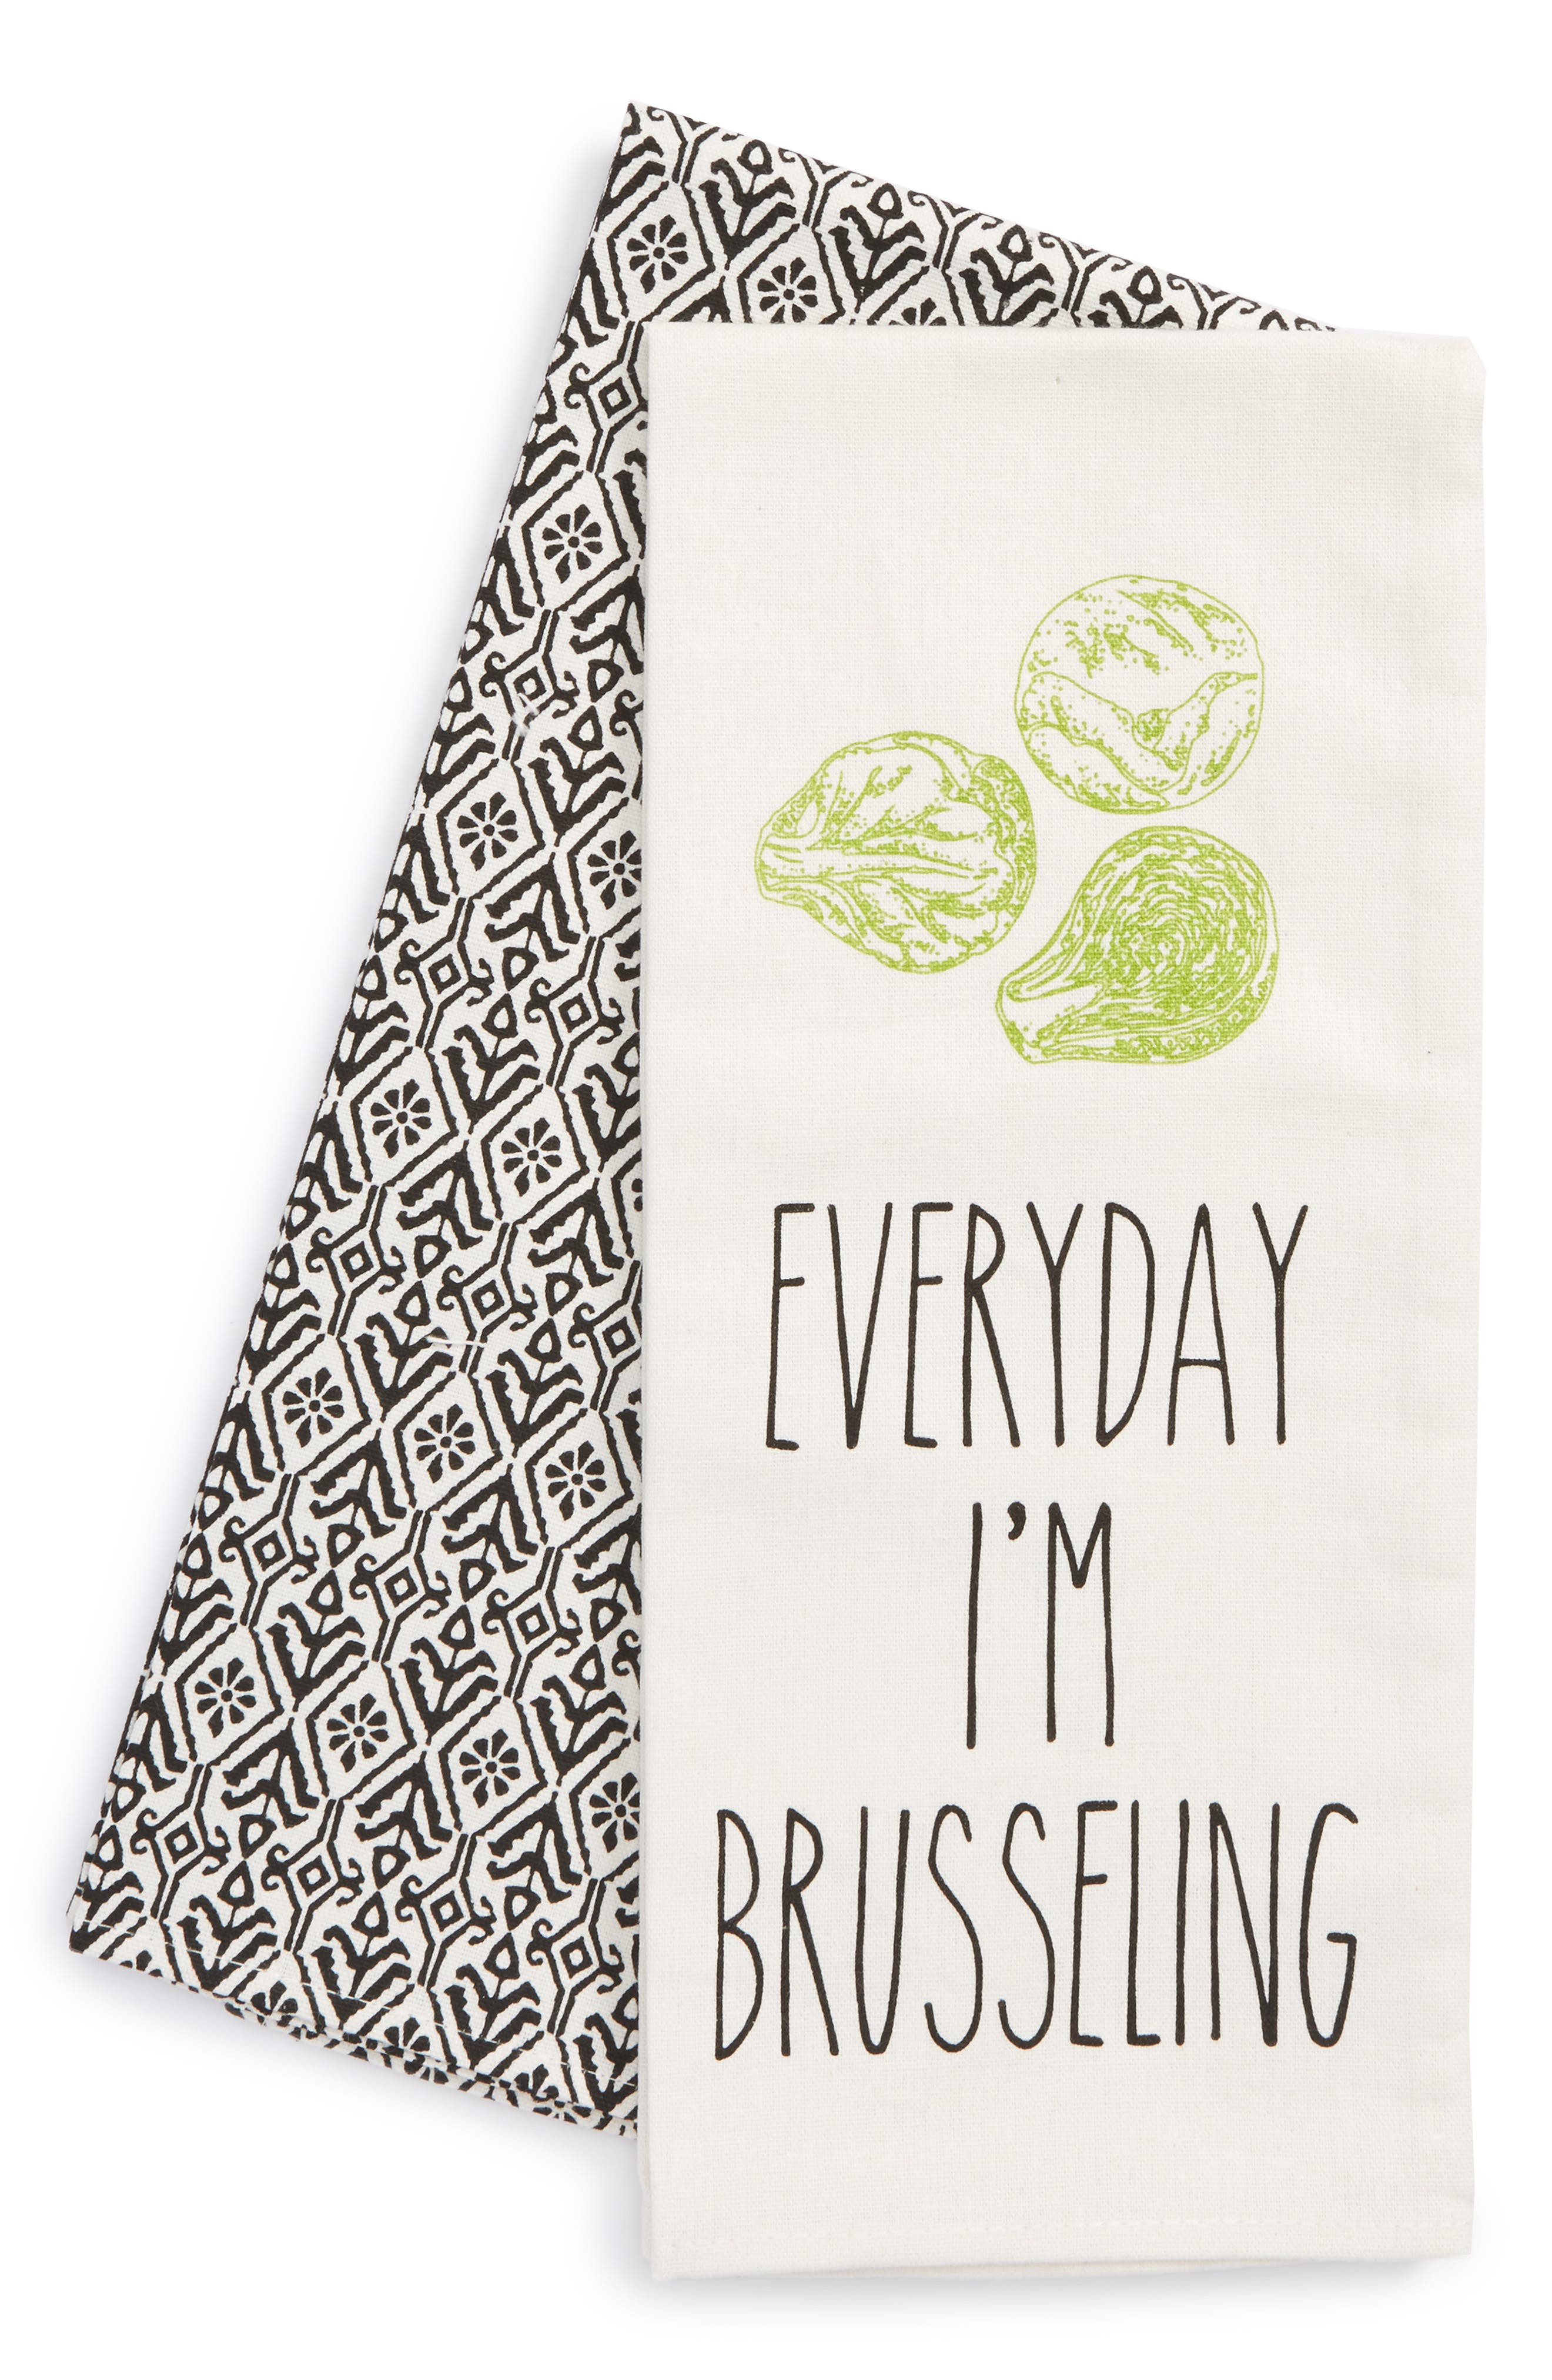 Brusseling Set of 2 Dish Towels,                         Main,                         color, 900